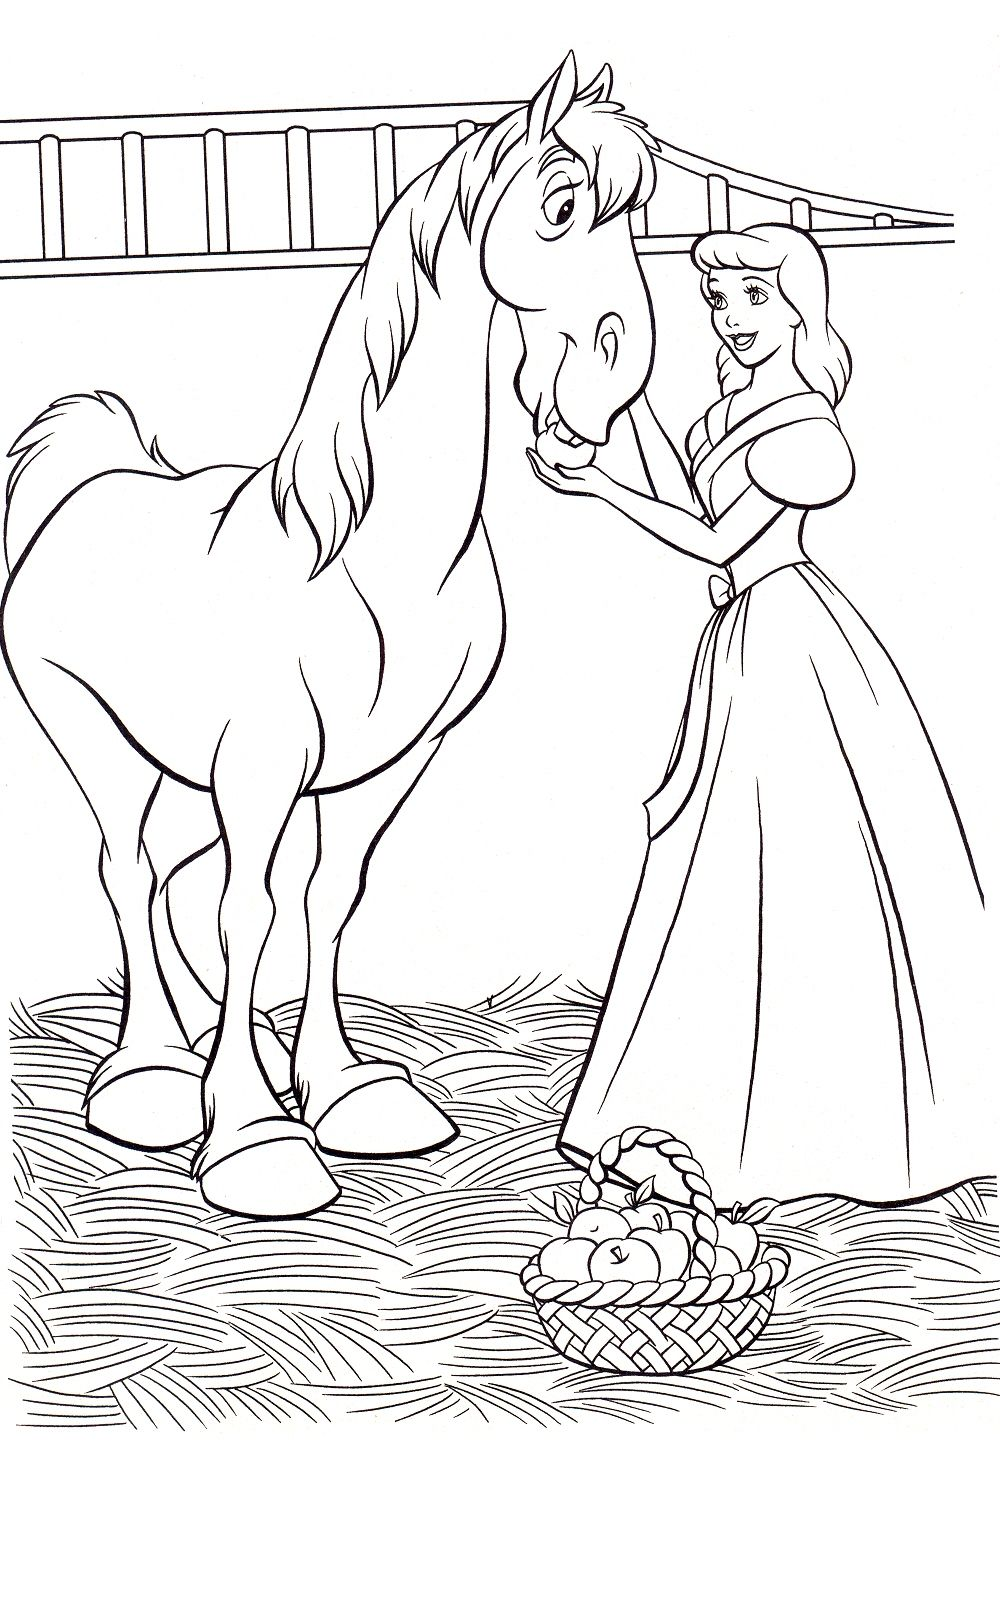 Cinderella Coloring Pages Wow Image Results Colorpages